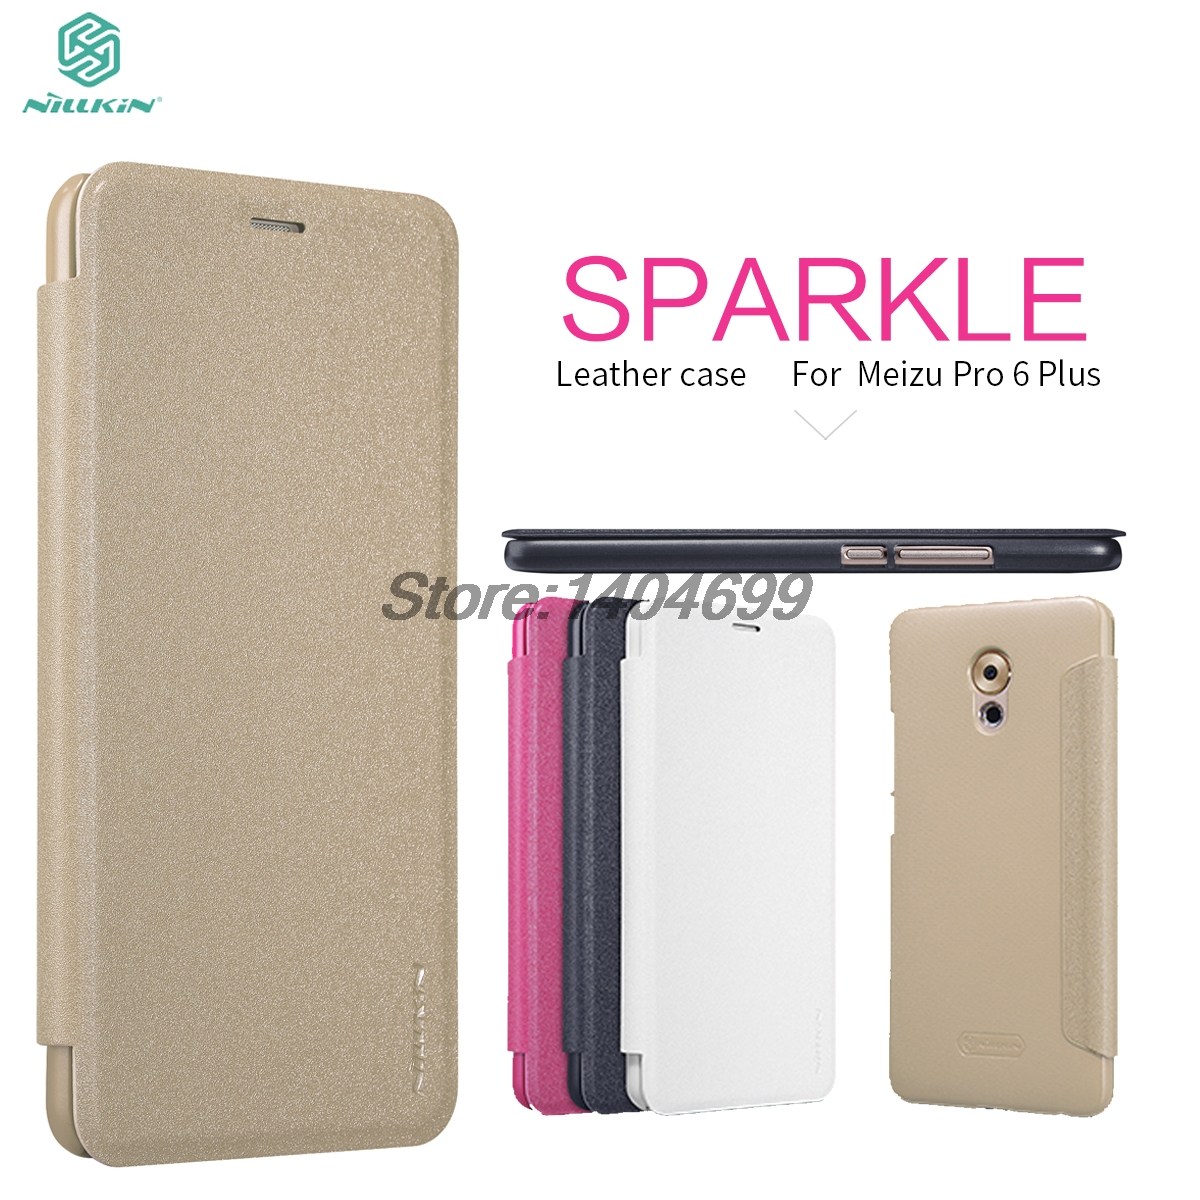 Meizu Pro 6 Plus Case Nillkin Sparkle Series PU Leather Cover Flip Case For Meizu Pro 6 Plus 5.7 inch PhoneMeizu Pro 6 Plus Case Nillkin Sparkle Series PU Leather Cover Flip Case For Meizu Pro 6 Plus 5.7 inch Phone